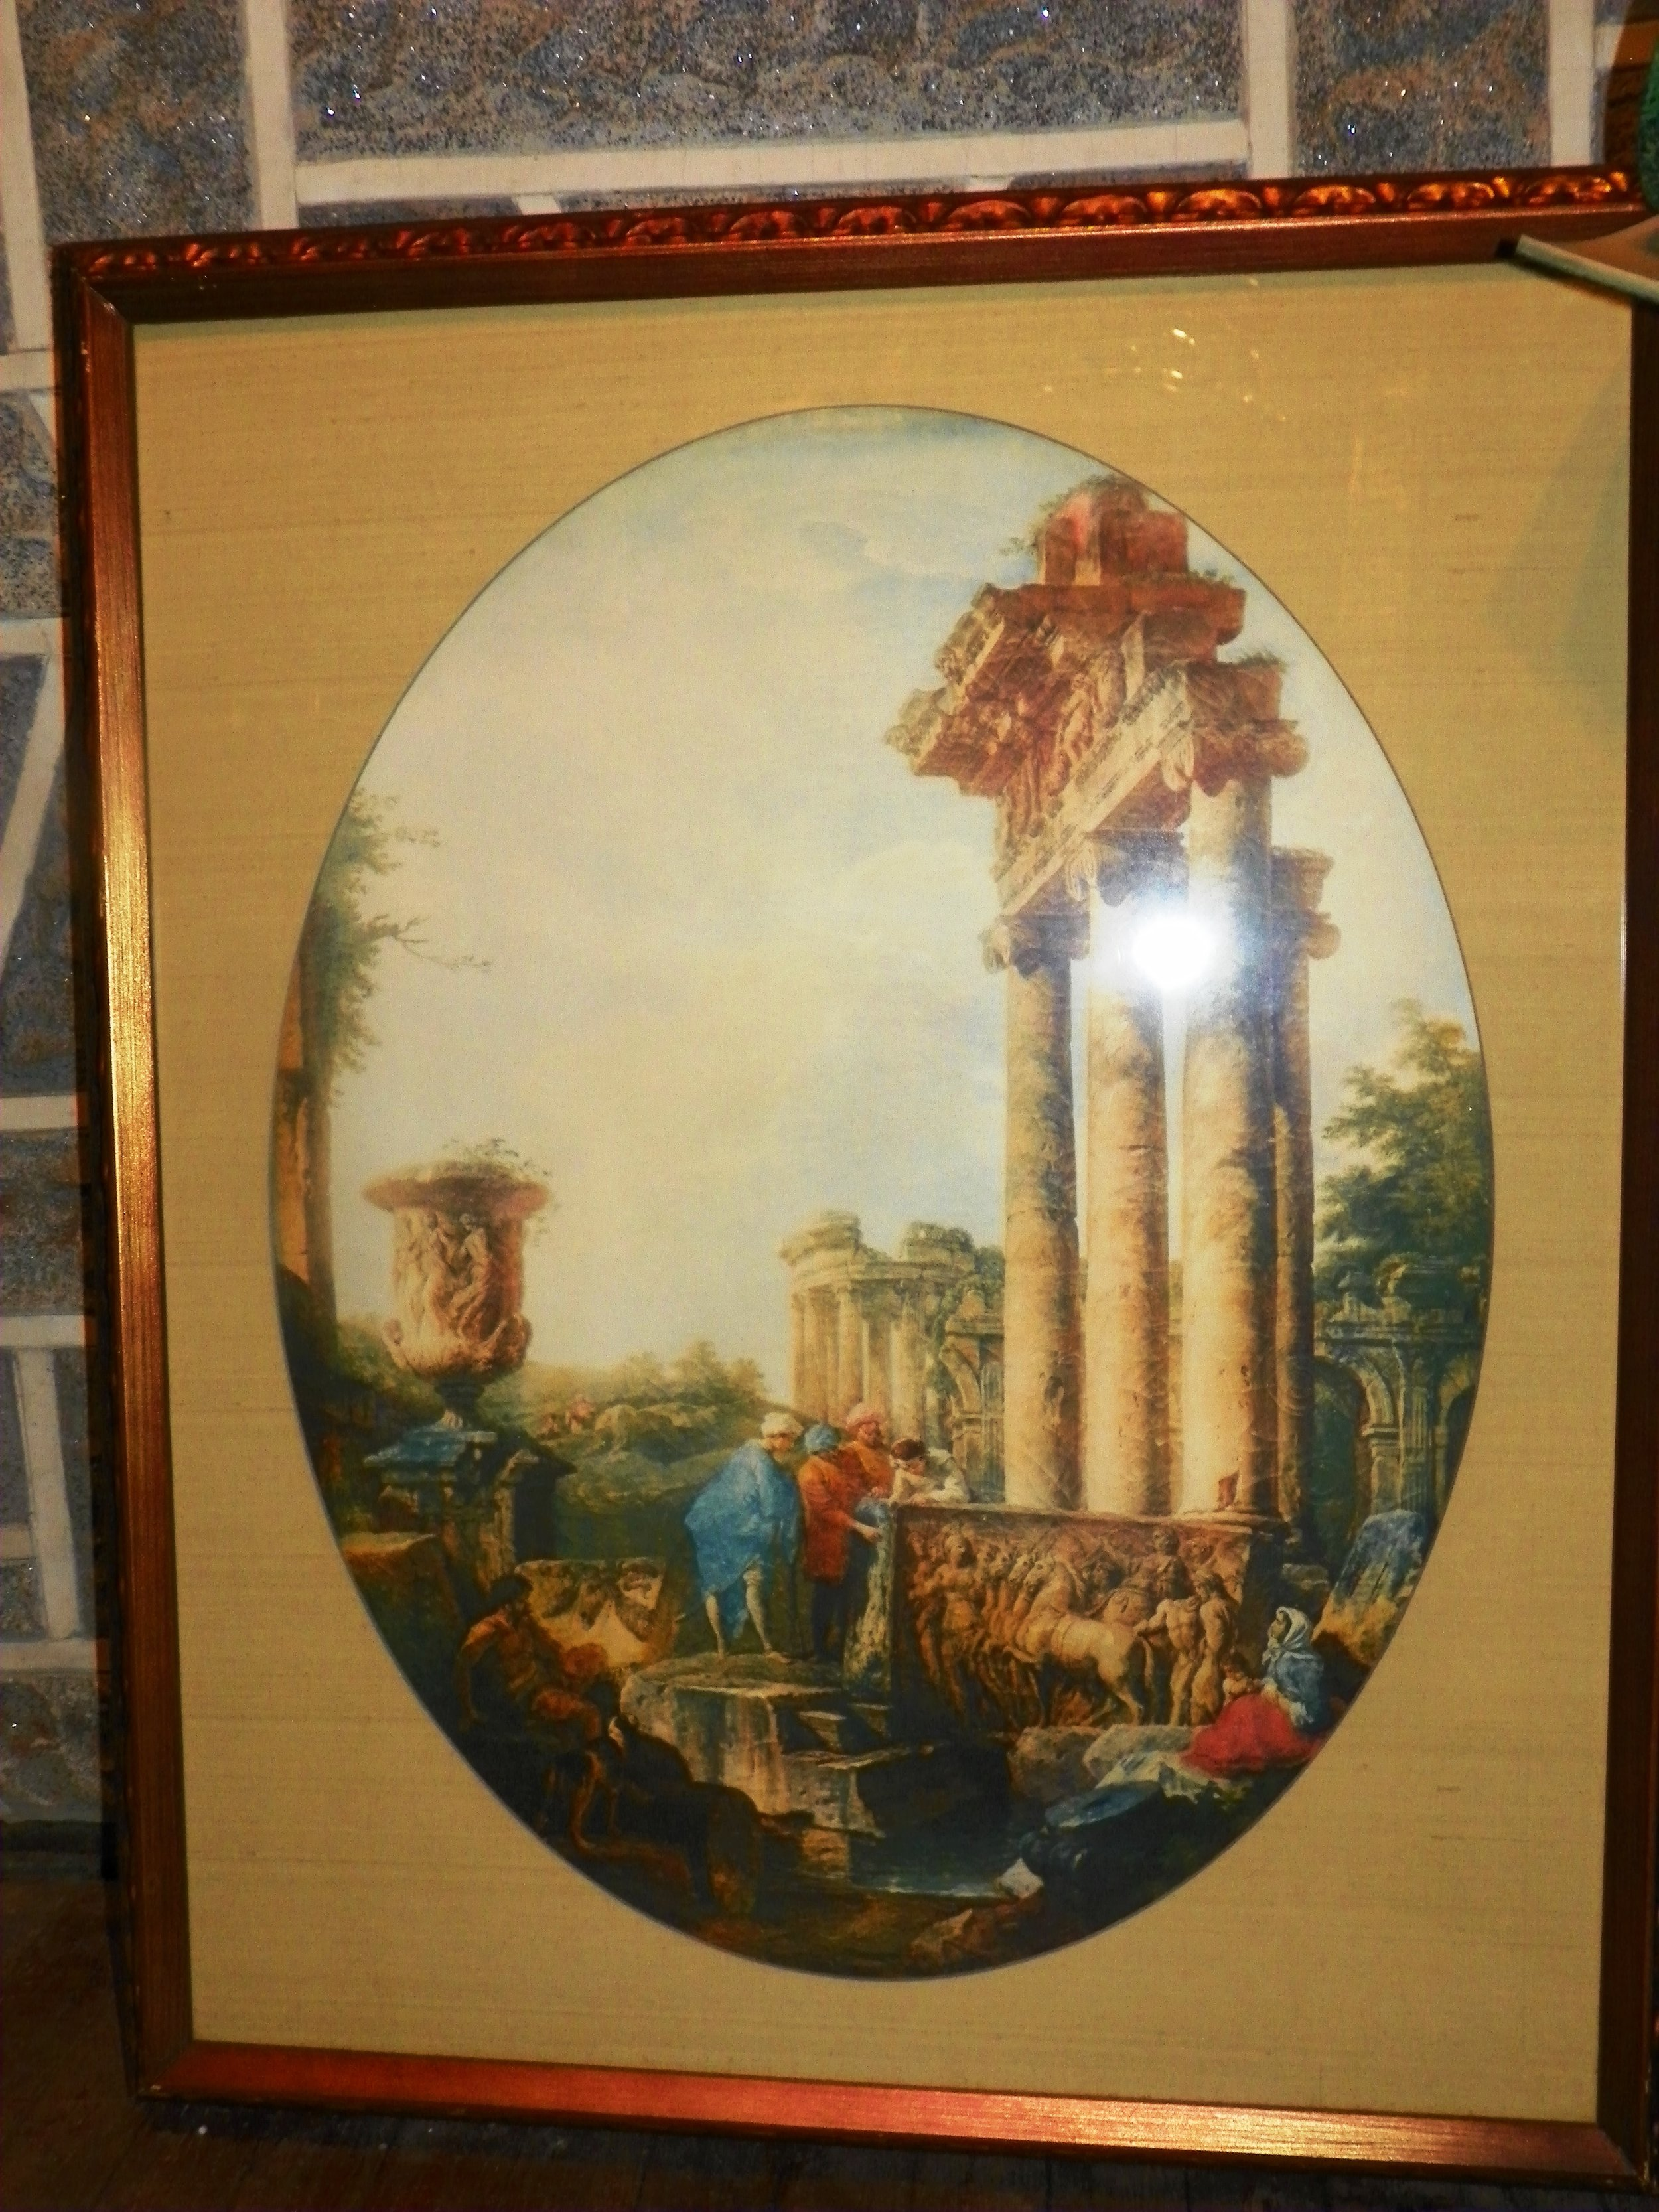 Roman Ruins art works - value of $80.00